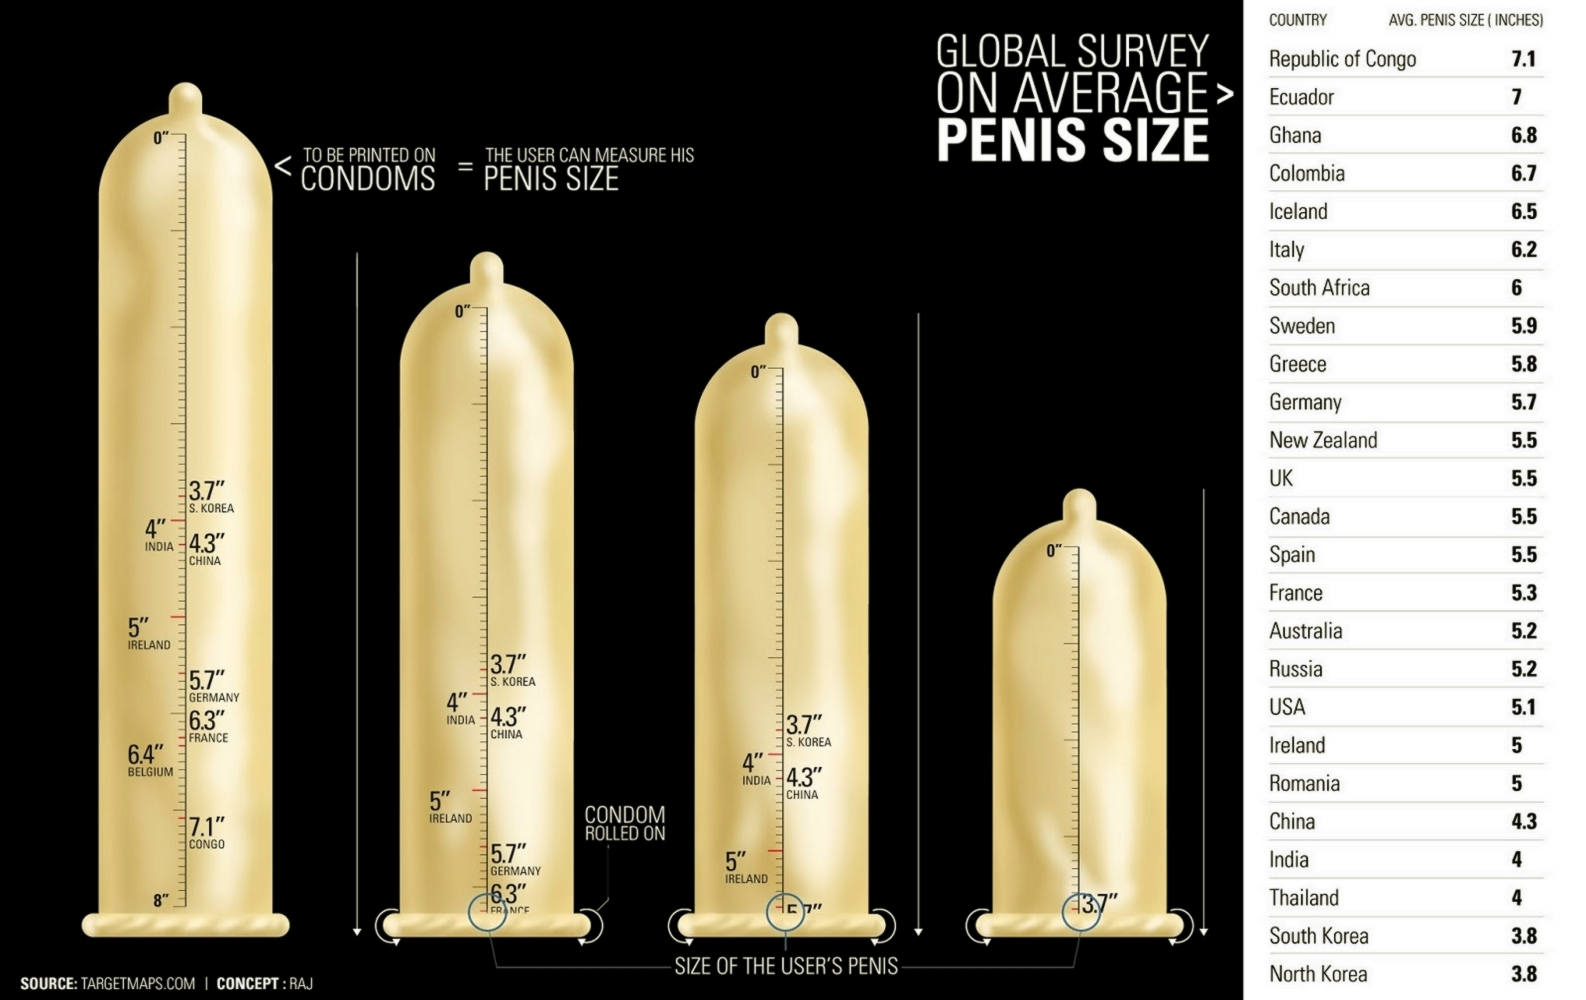 The perfect penis size has been revealed by a new scientific study